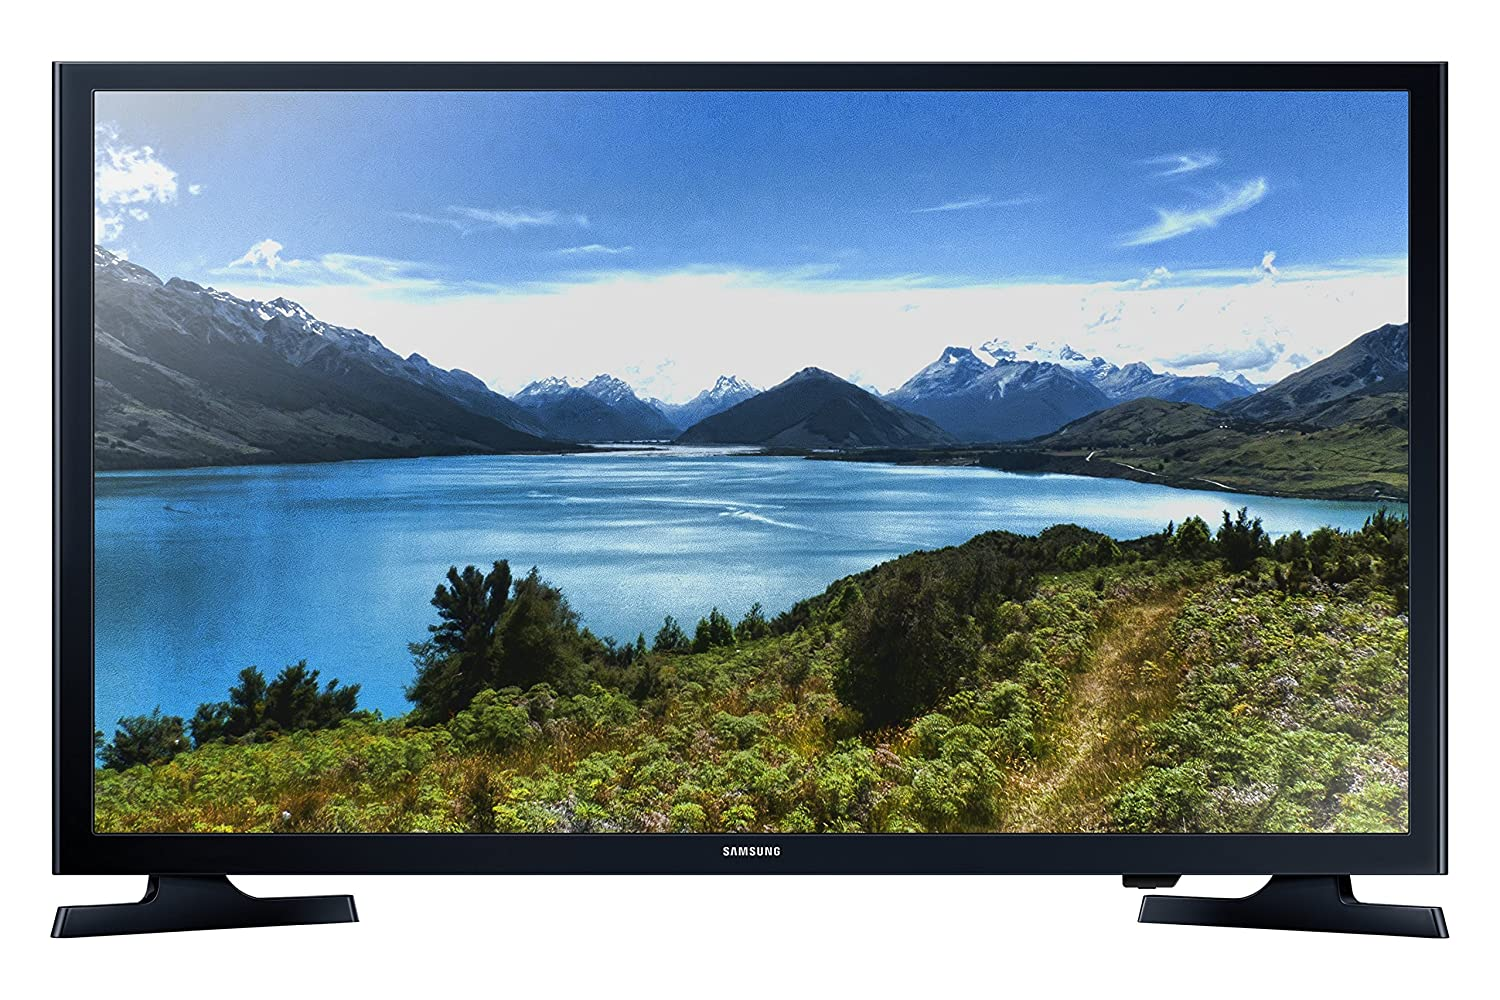 Upto 40% OFF on Samsung and Micromax TVs By Amazon | Samsung 80 cm (32 inches) 32J4003-SF HD Ready LED Television @ Rs.17,990